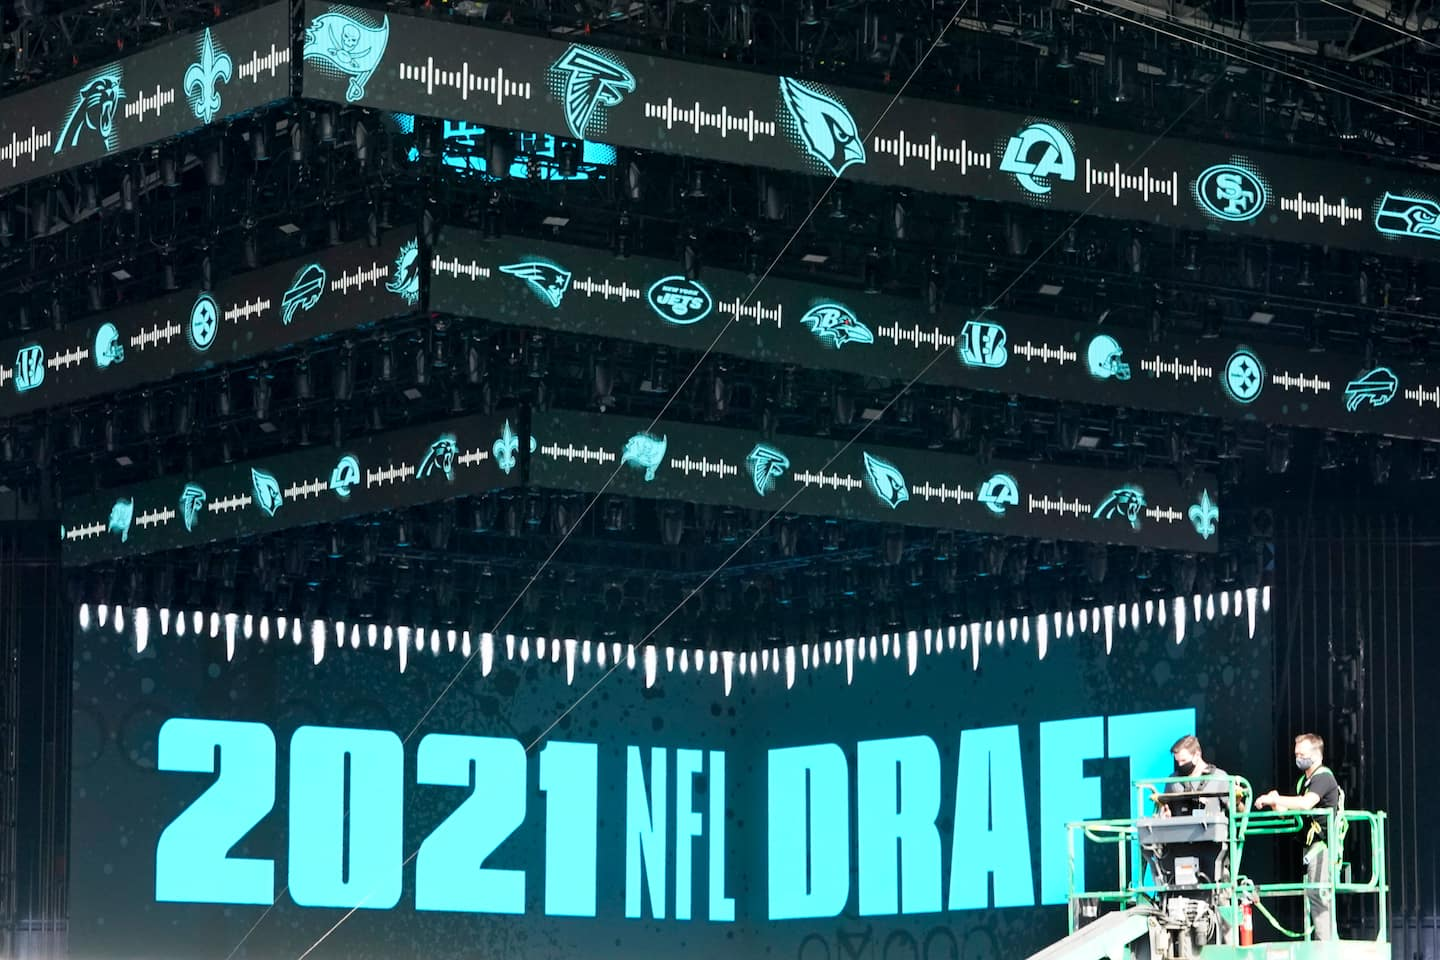 What to watch on Thursday: The 2021 NFL Draft on ABC